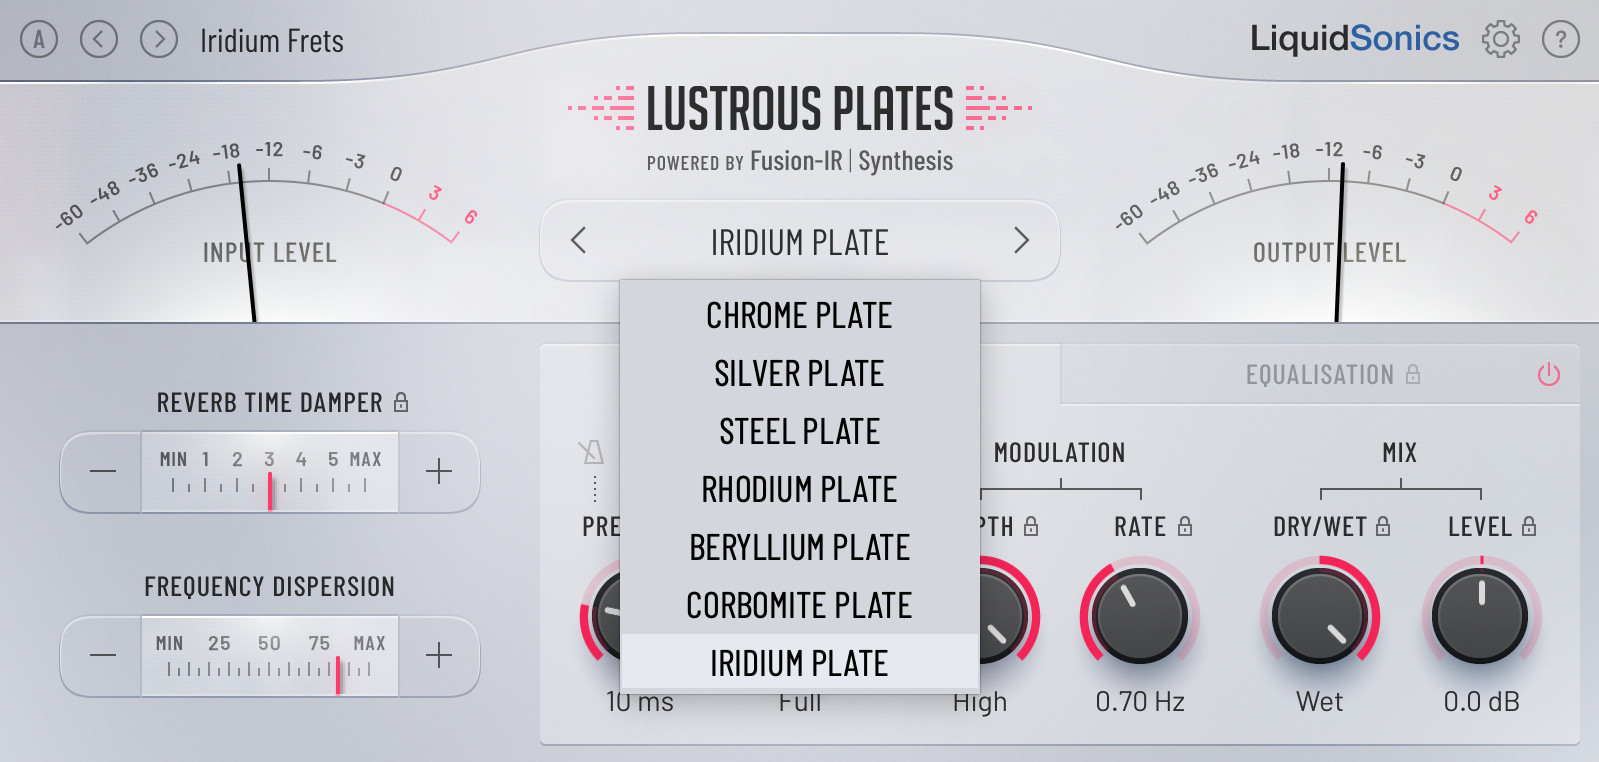 Lustrous Plates Plate Models Light